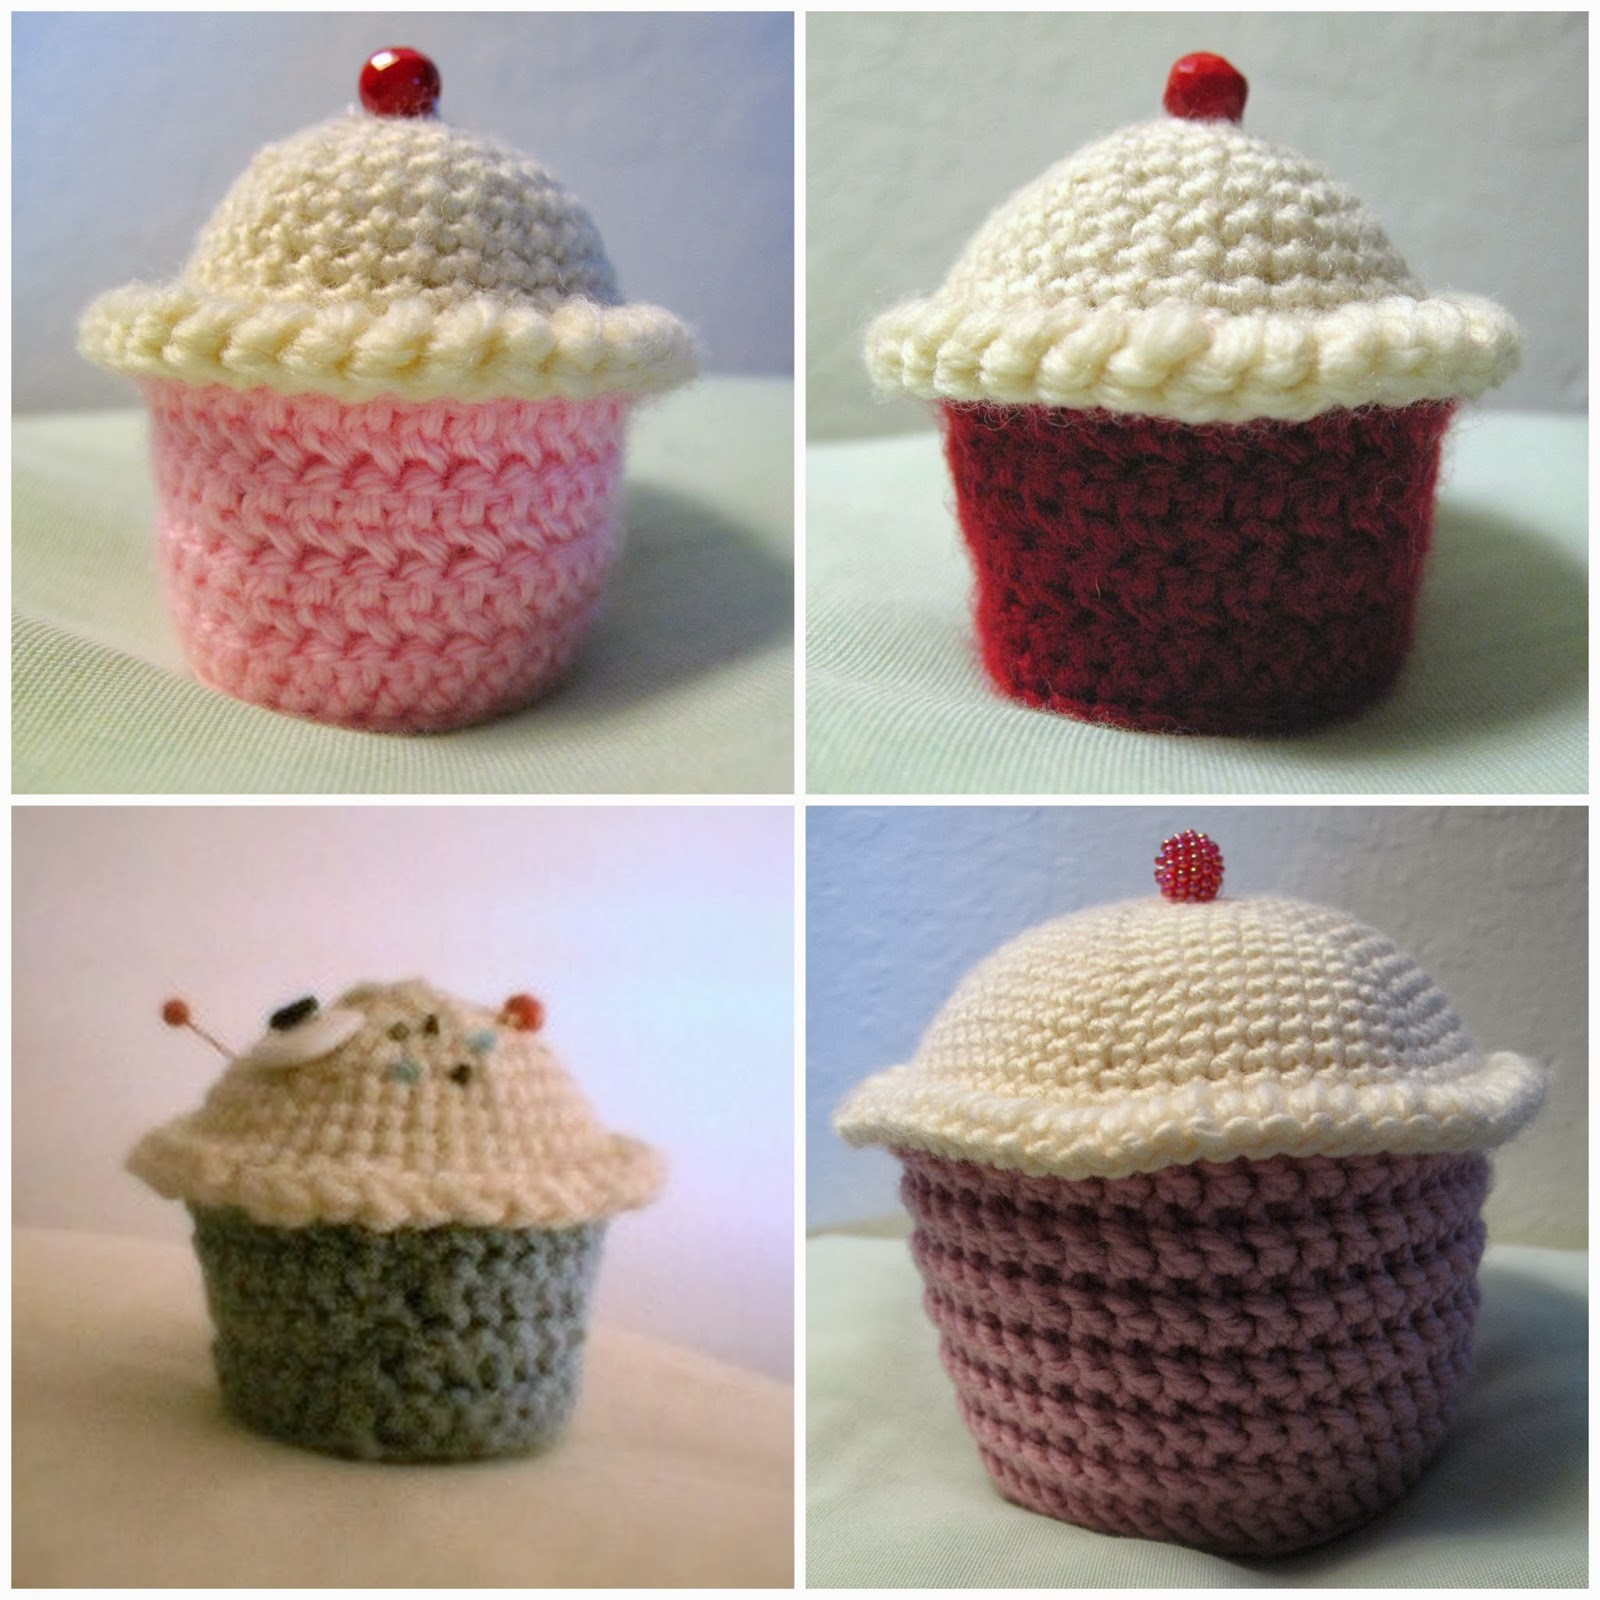 Oh the cuteness free crochet pattern amigurumi cupcakes whip free crochet pattern amigurumi cupcakes whip up something sweet for your sweetie this is a great beginners amigurumi pattern bankloansurffo Images